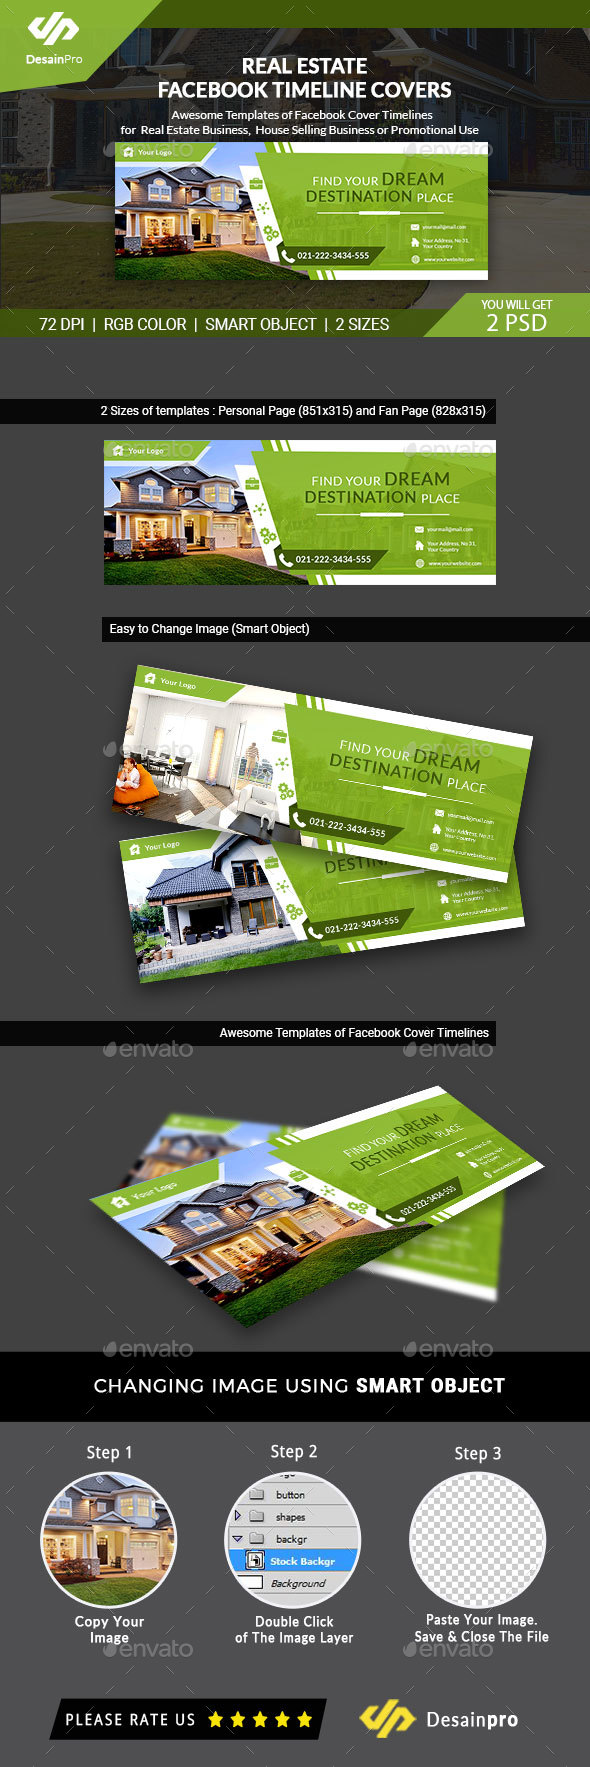 GraphicRiver Real Estate FB Cover Timeline AR 21117439